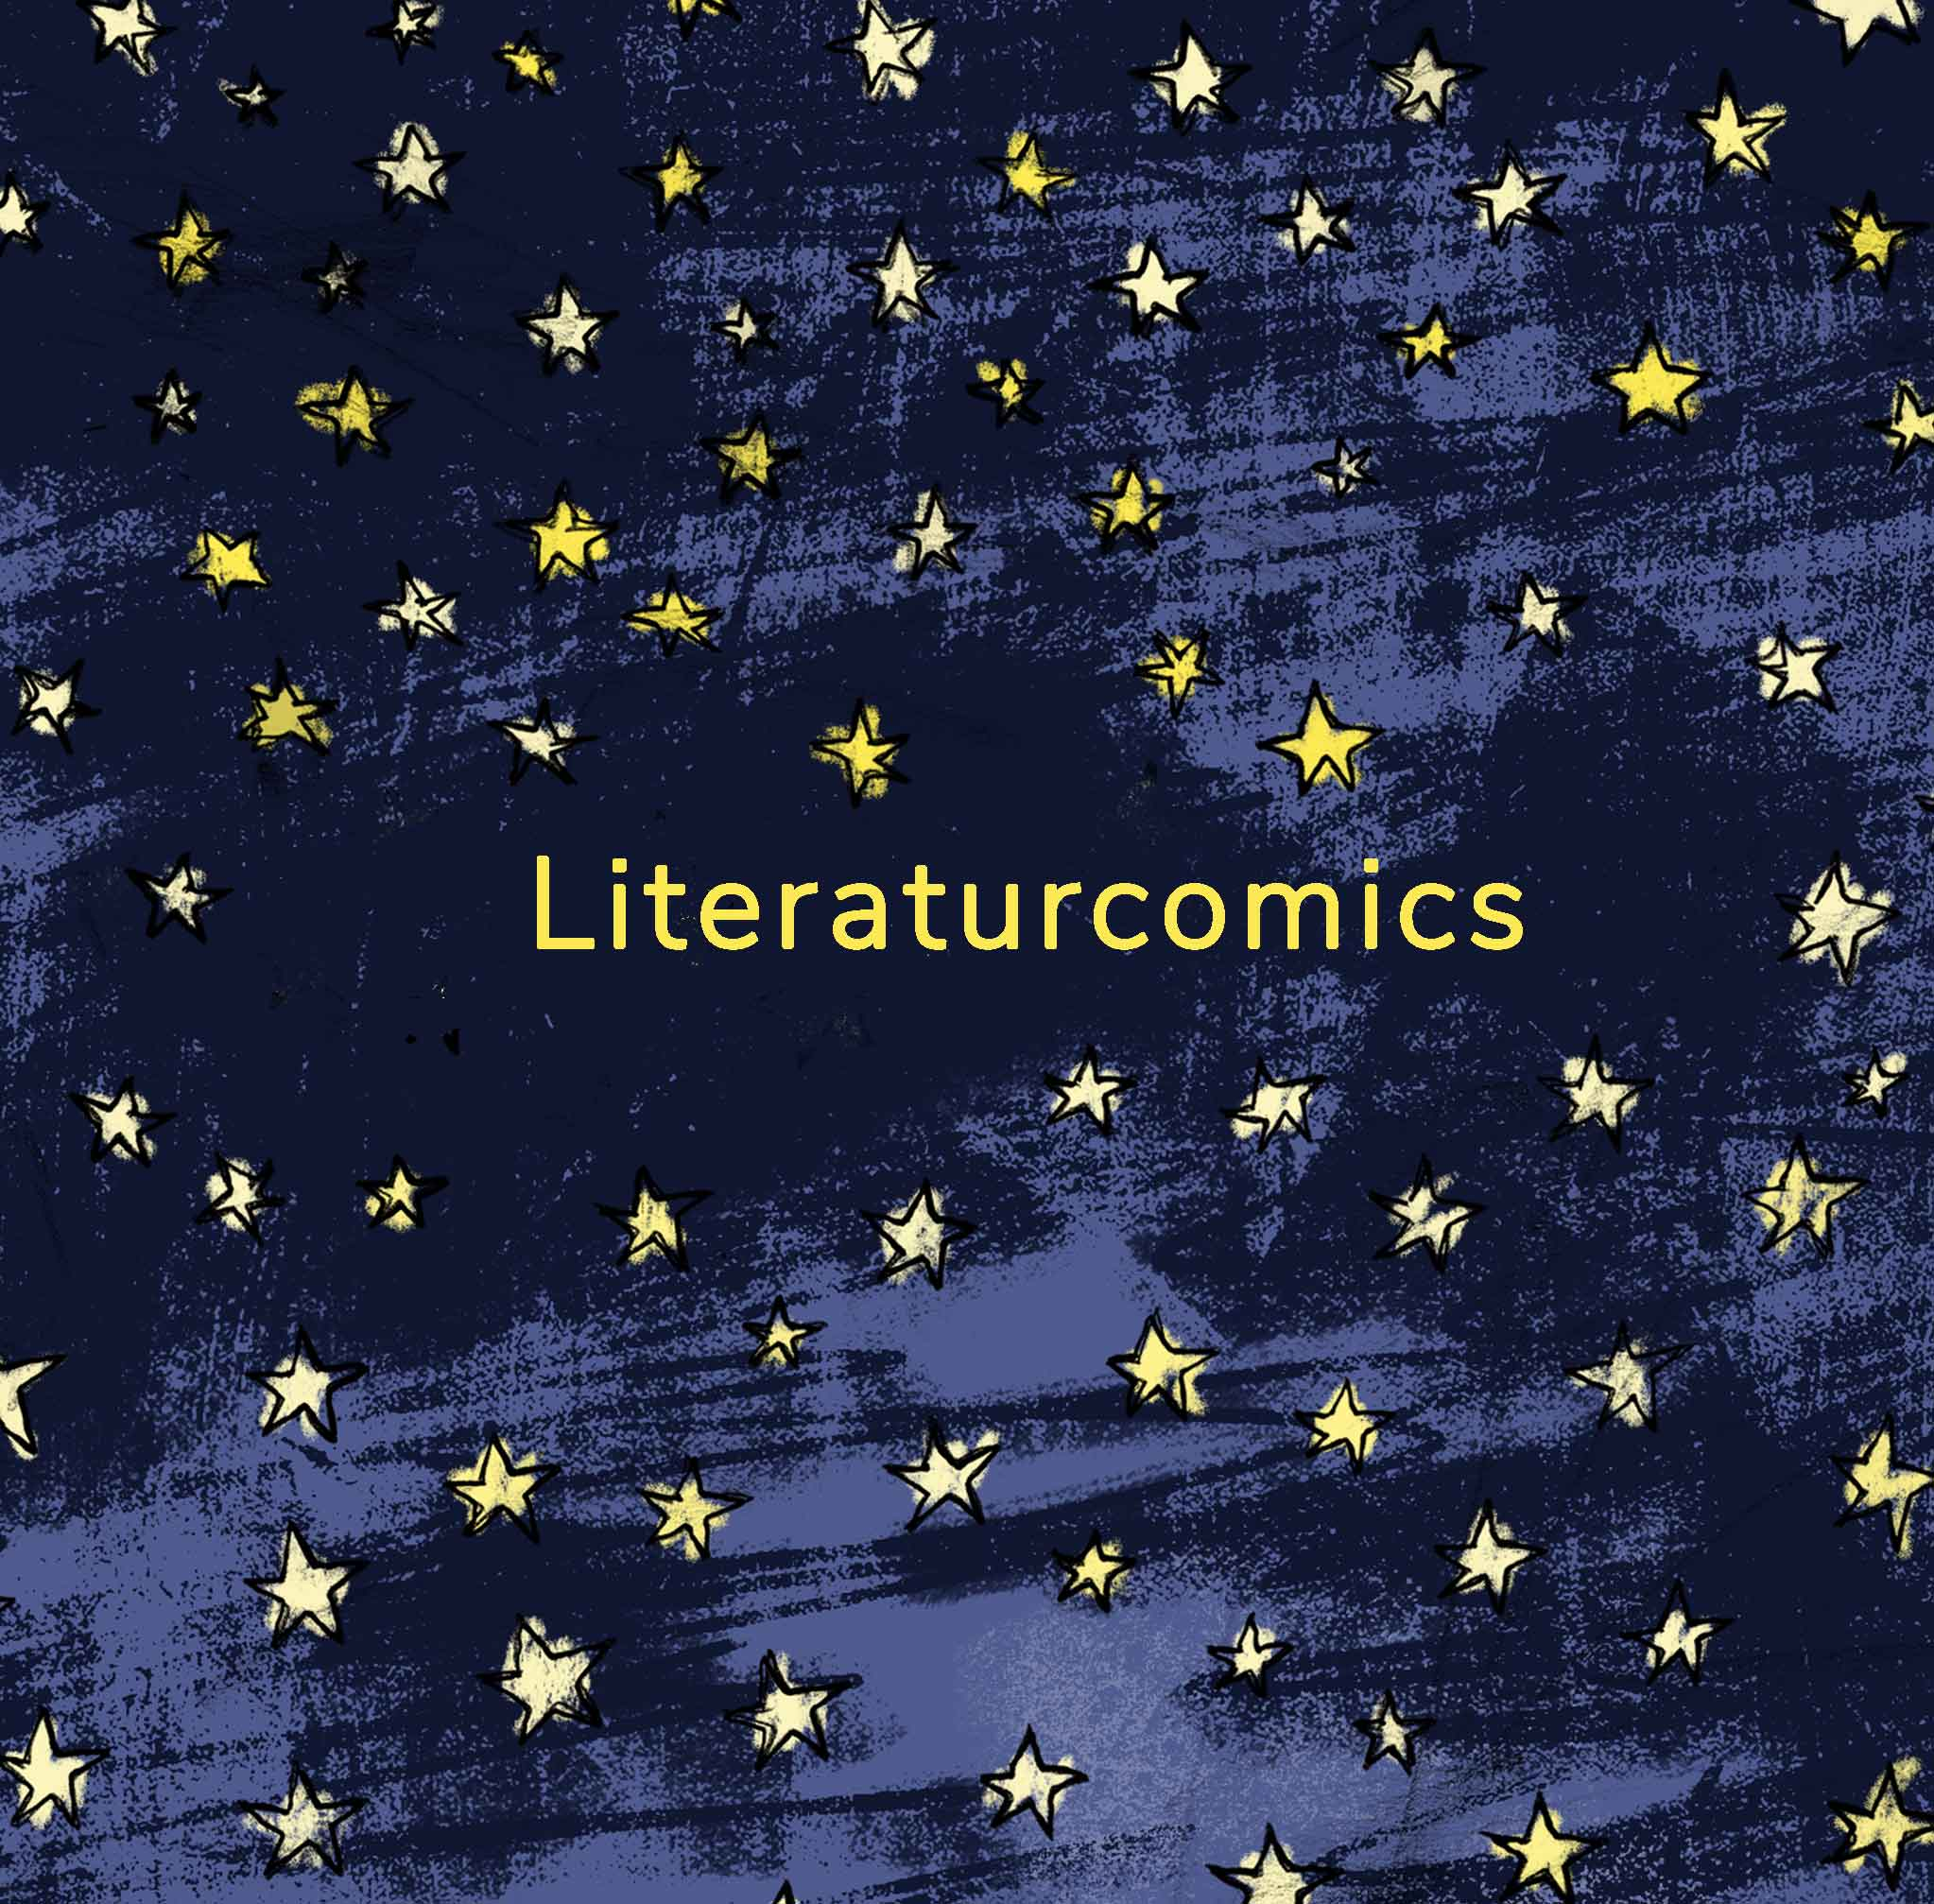 literaturcomics